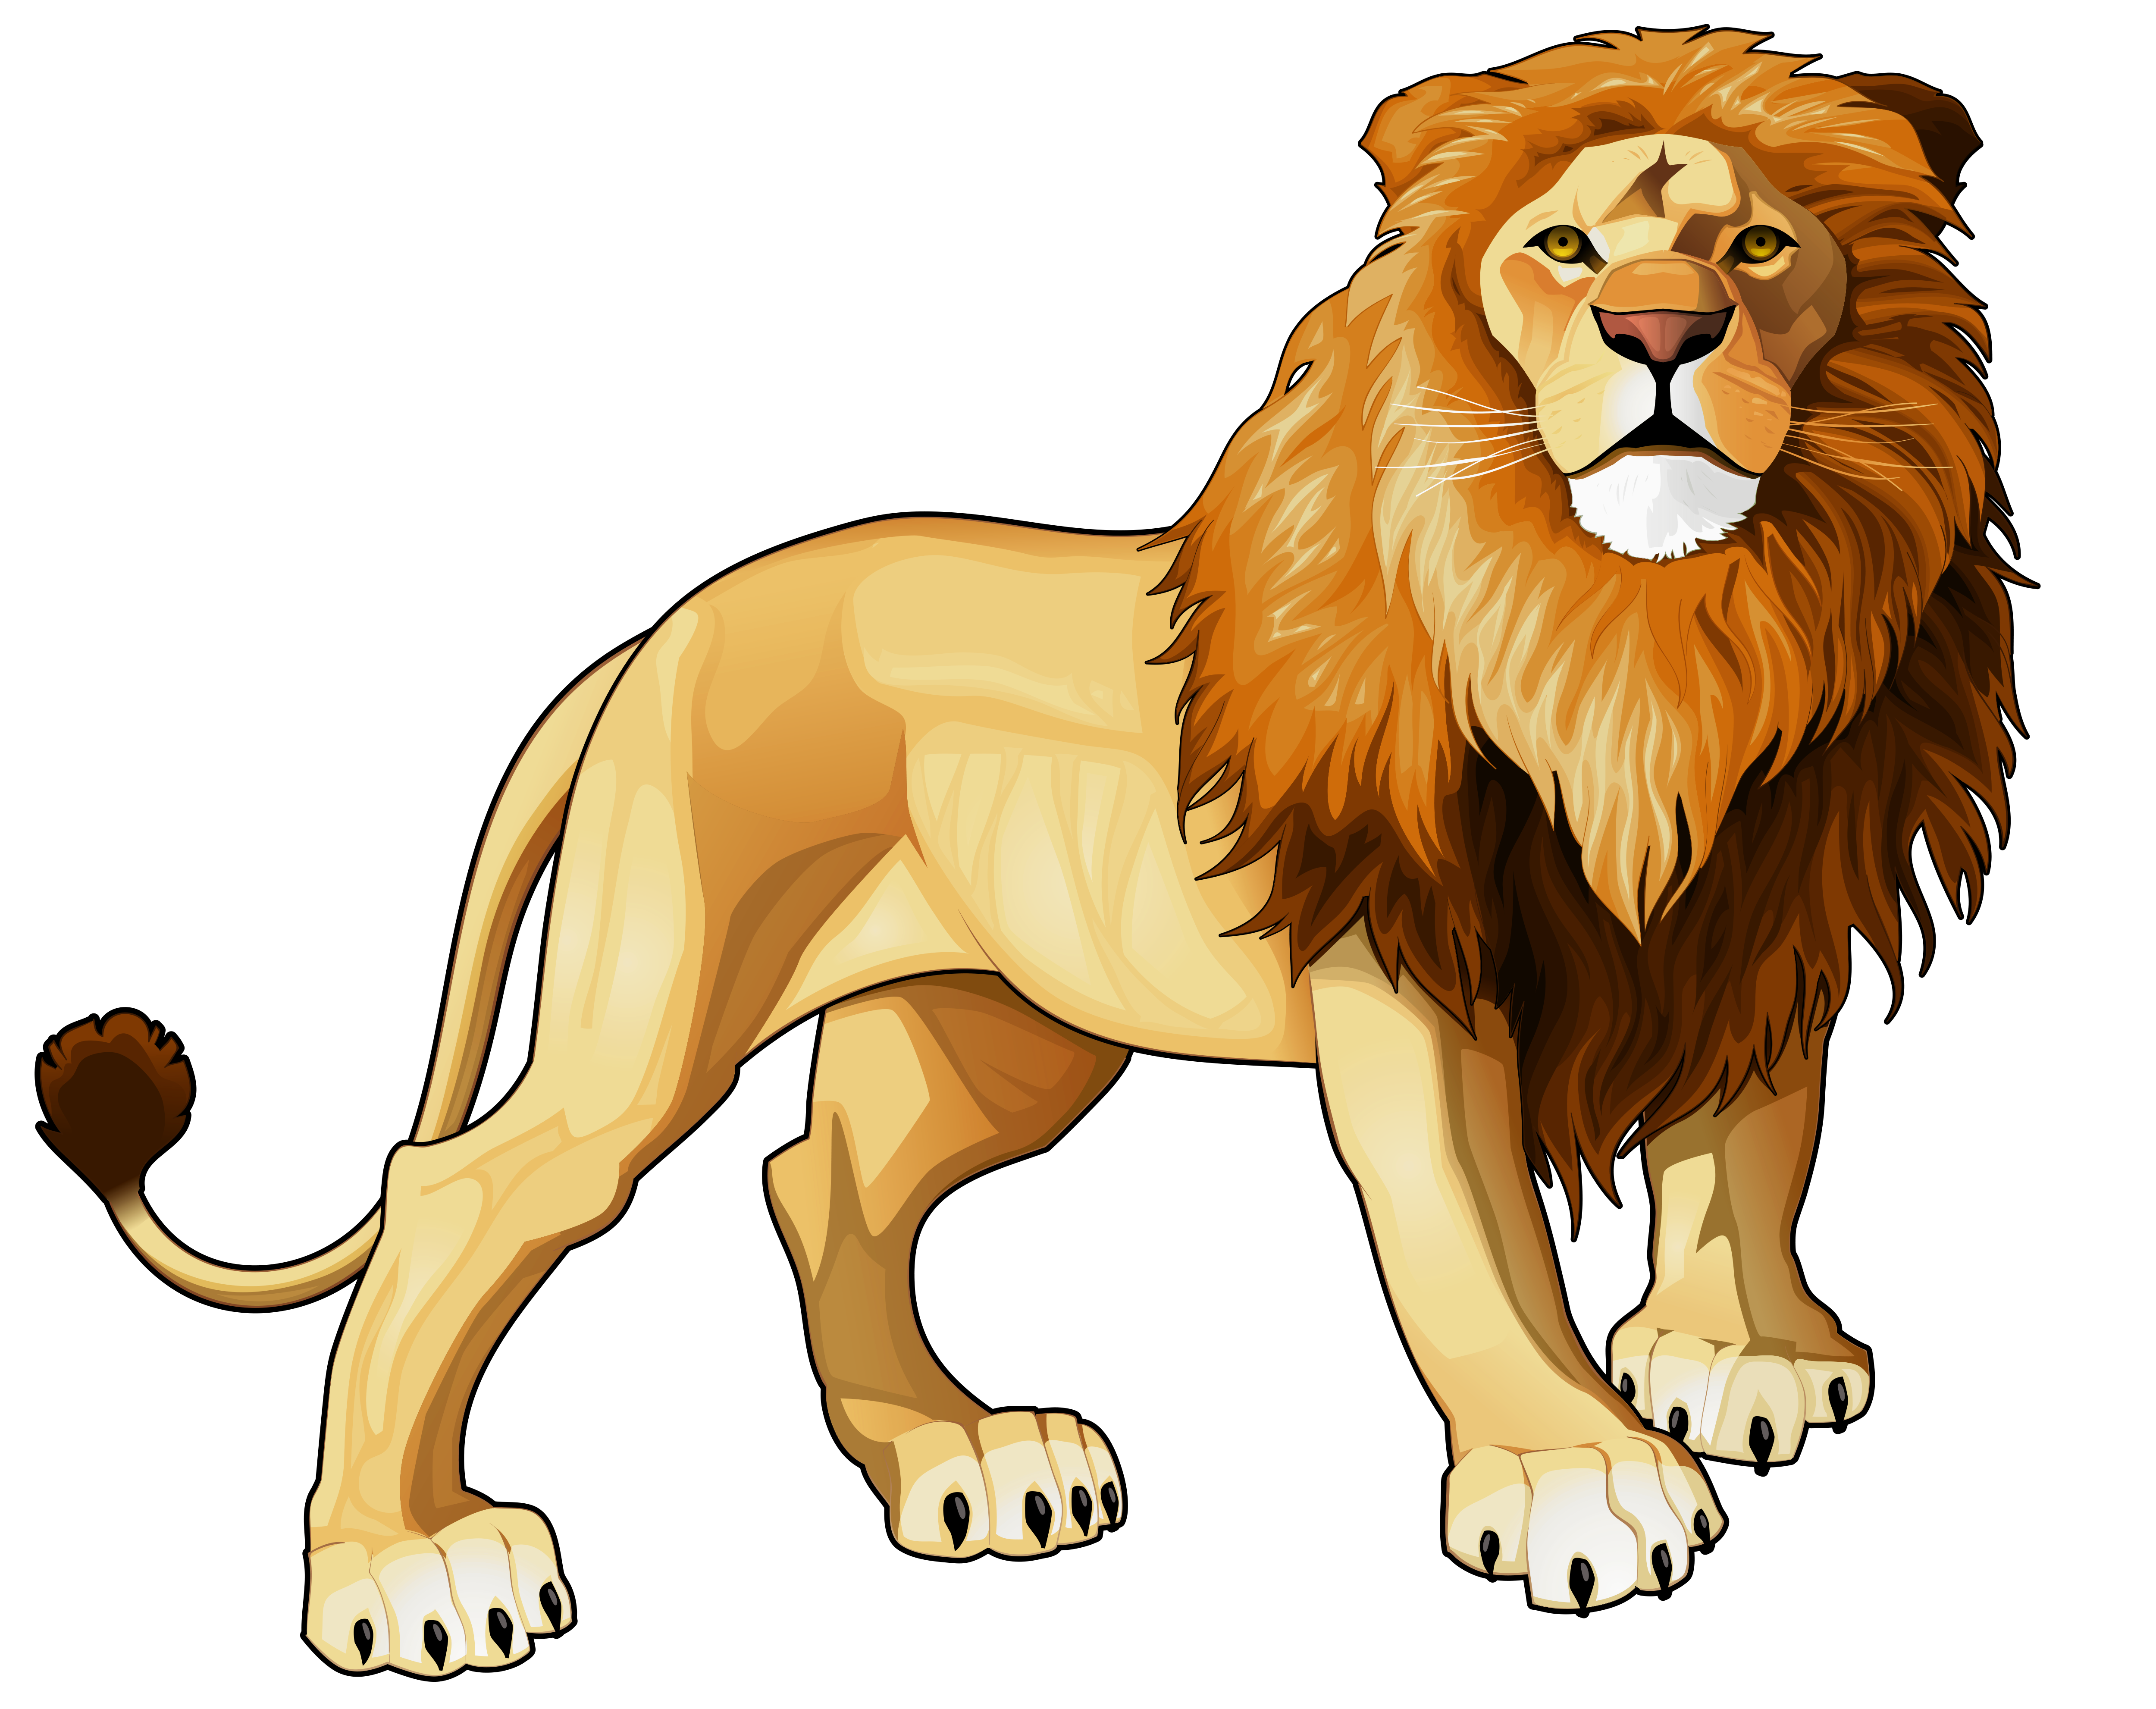 Clipart volleyball lion. Cool of letters format